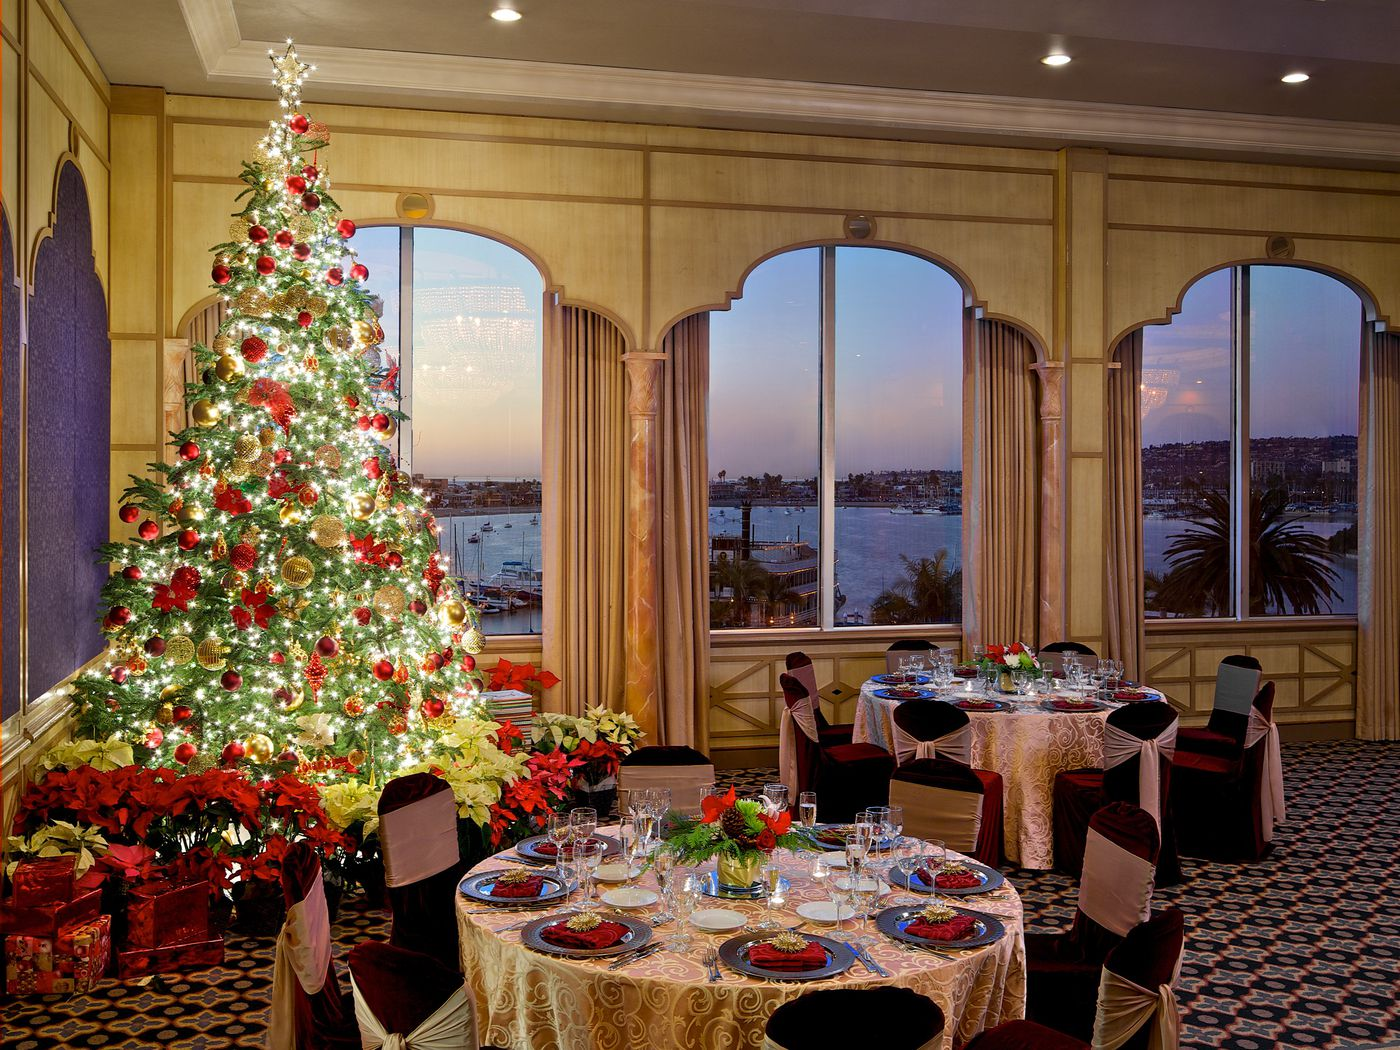 Christmas Buffet San Diego 2020 What restaurants are open on Christmas in San DIego   Eater San Diego